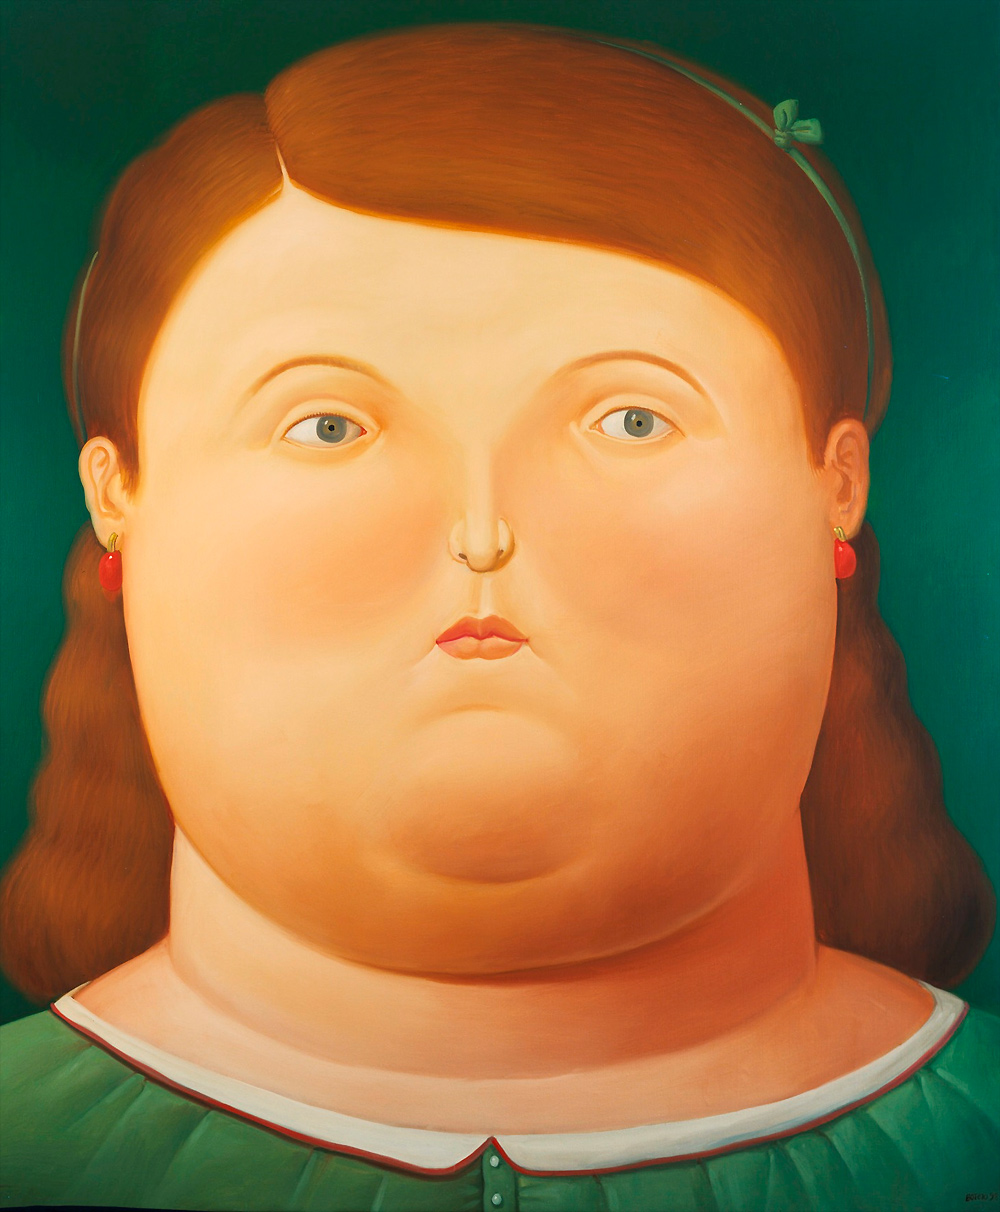 Design_Art_Beauty_fernando_botero20